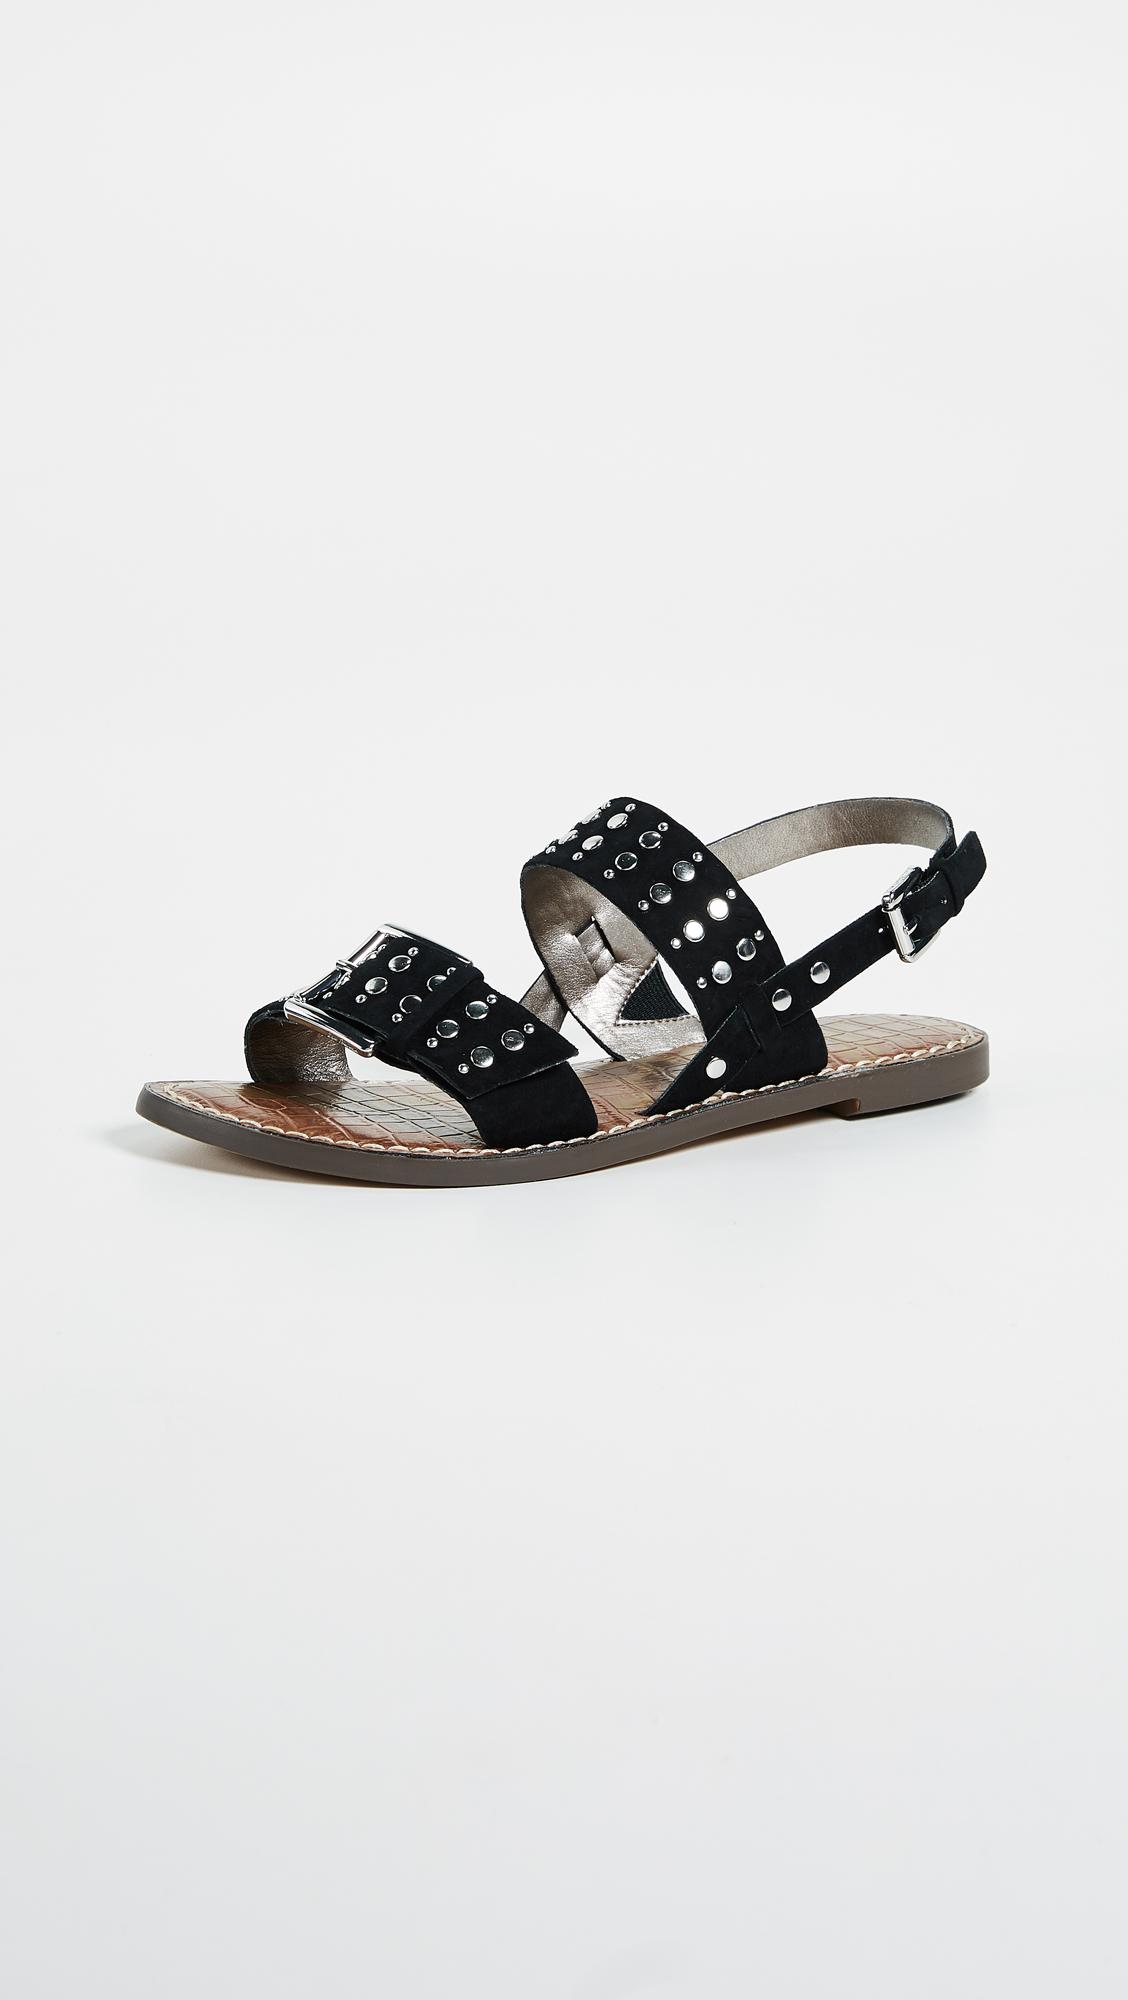 New Look GLADE - Sandals - black zKyWKTe2X